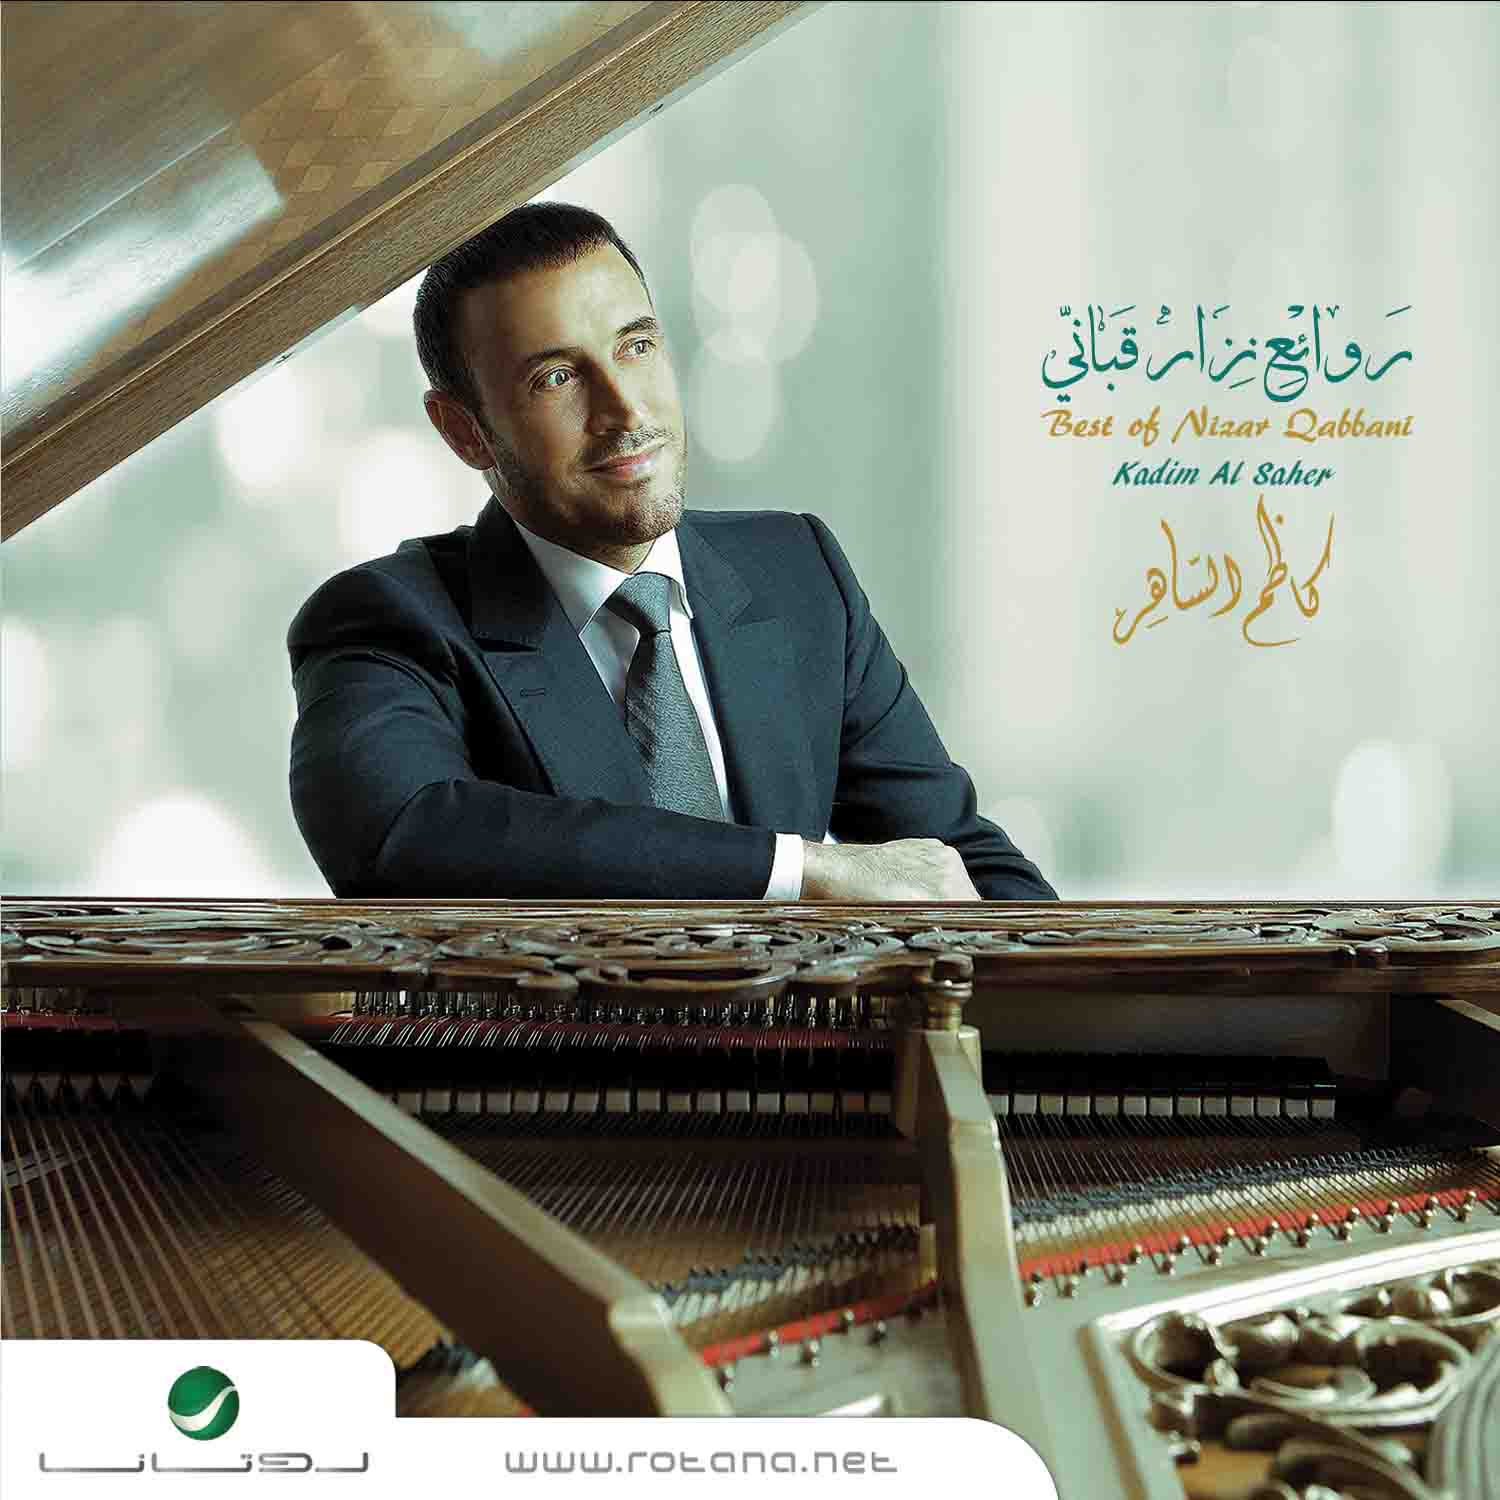 Music Nation Kadthem el saher new album 3